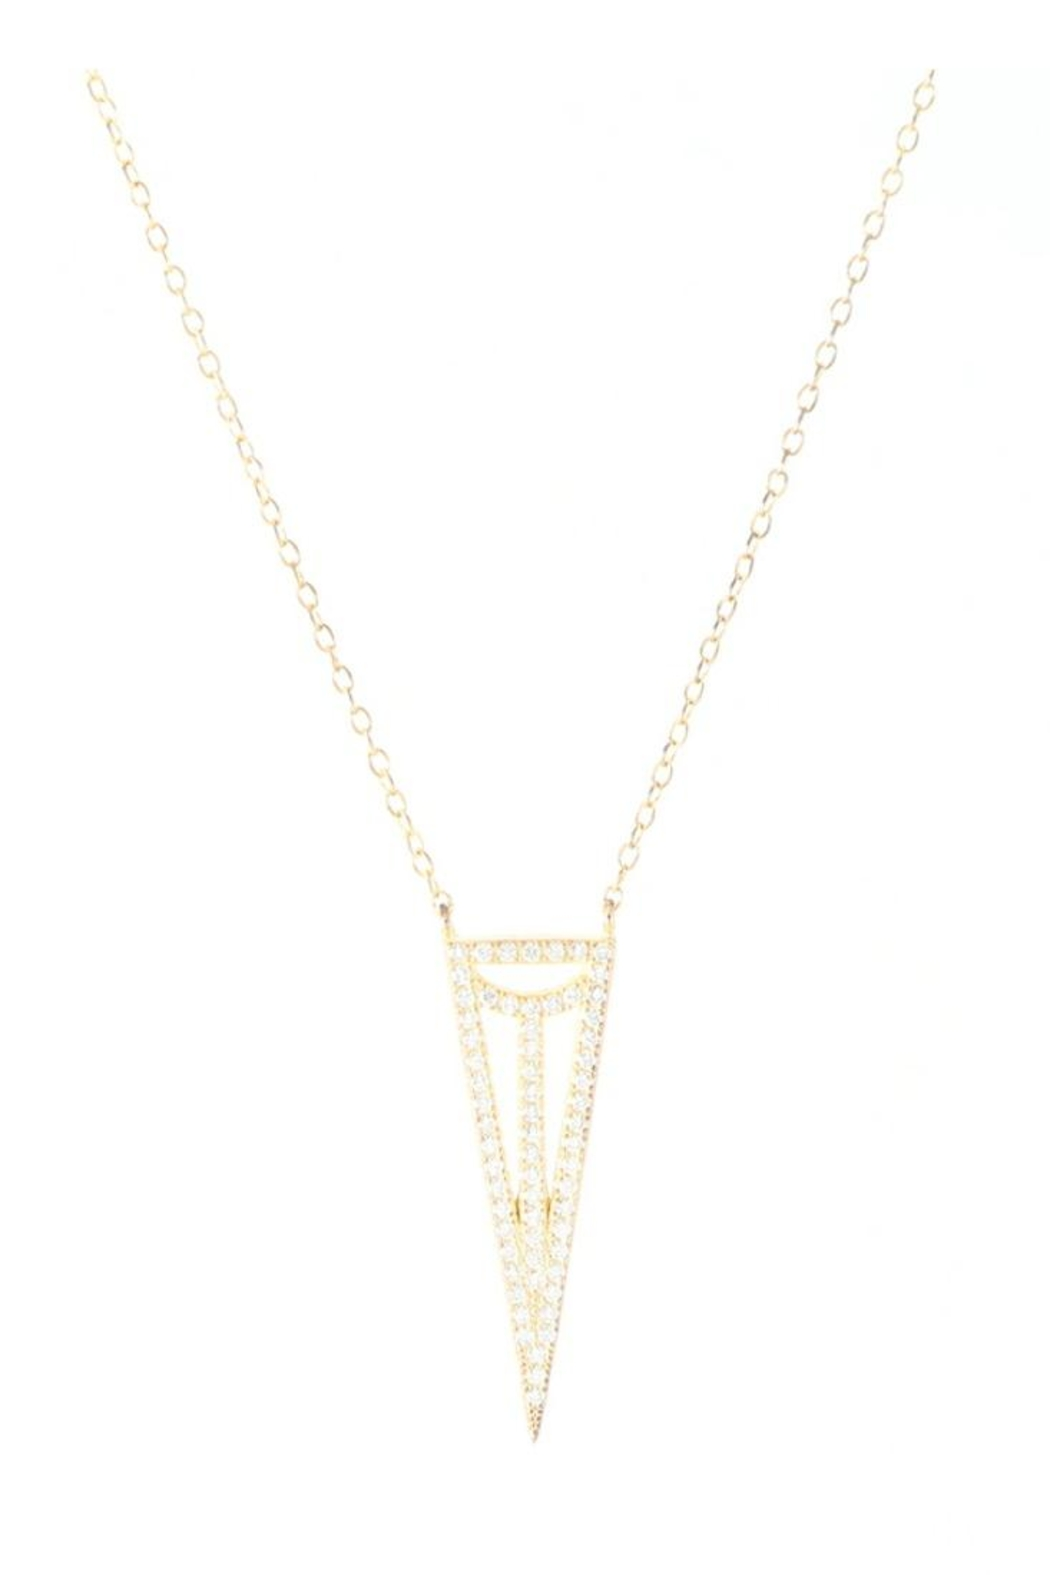 Allie & Chica Gold Triangle Necklace - Main Image